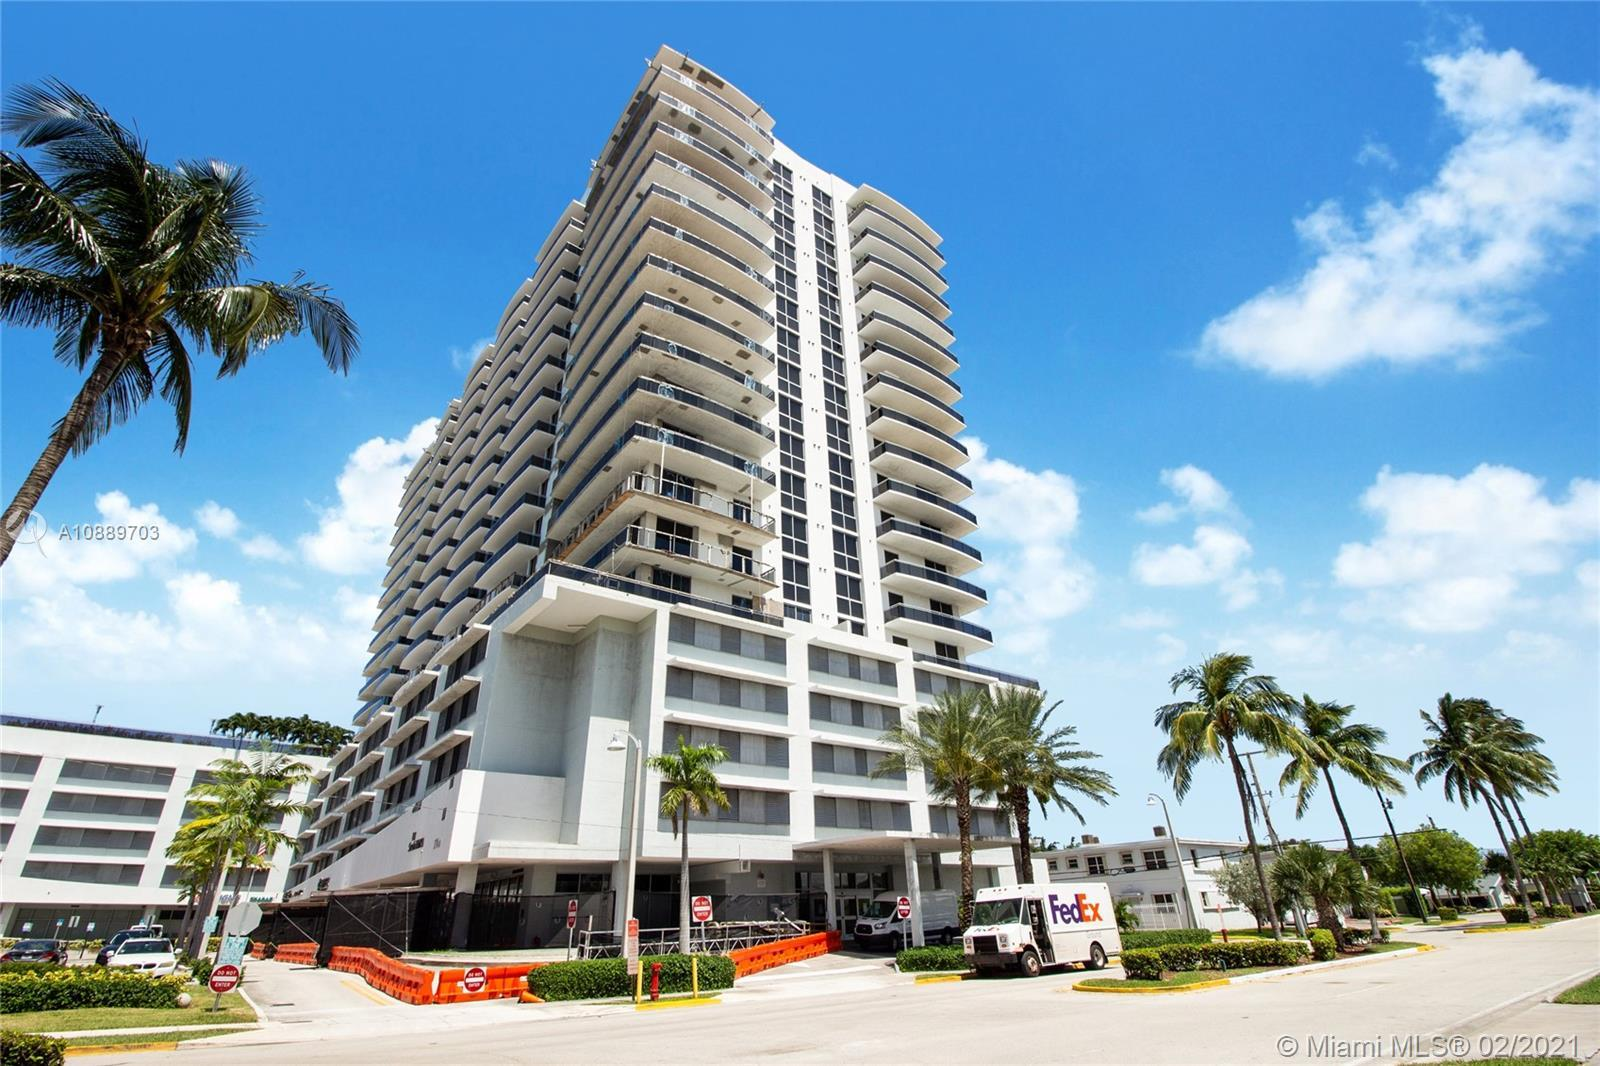 Gorgeous condo for sale on one of Miami's most beautiful islands. The Lexi's best & most desired uni